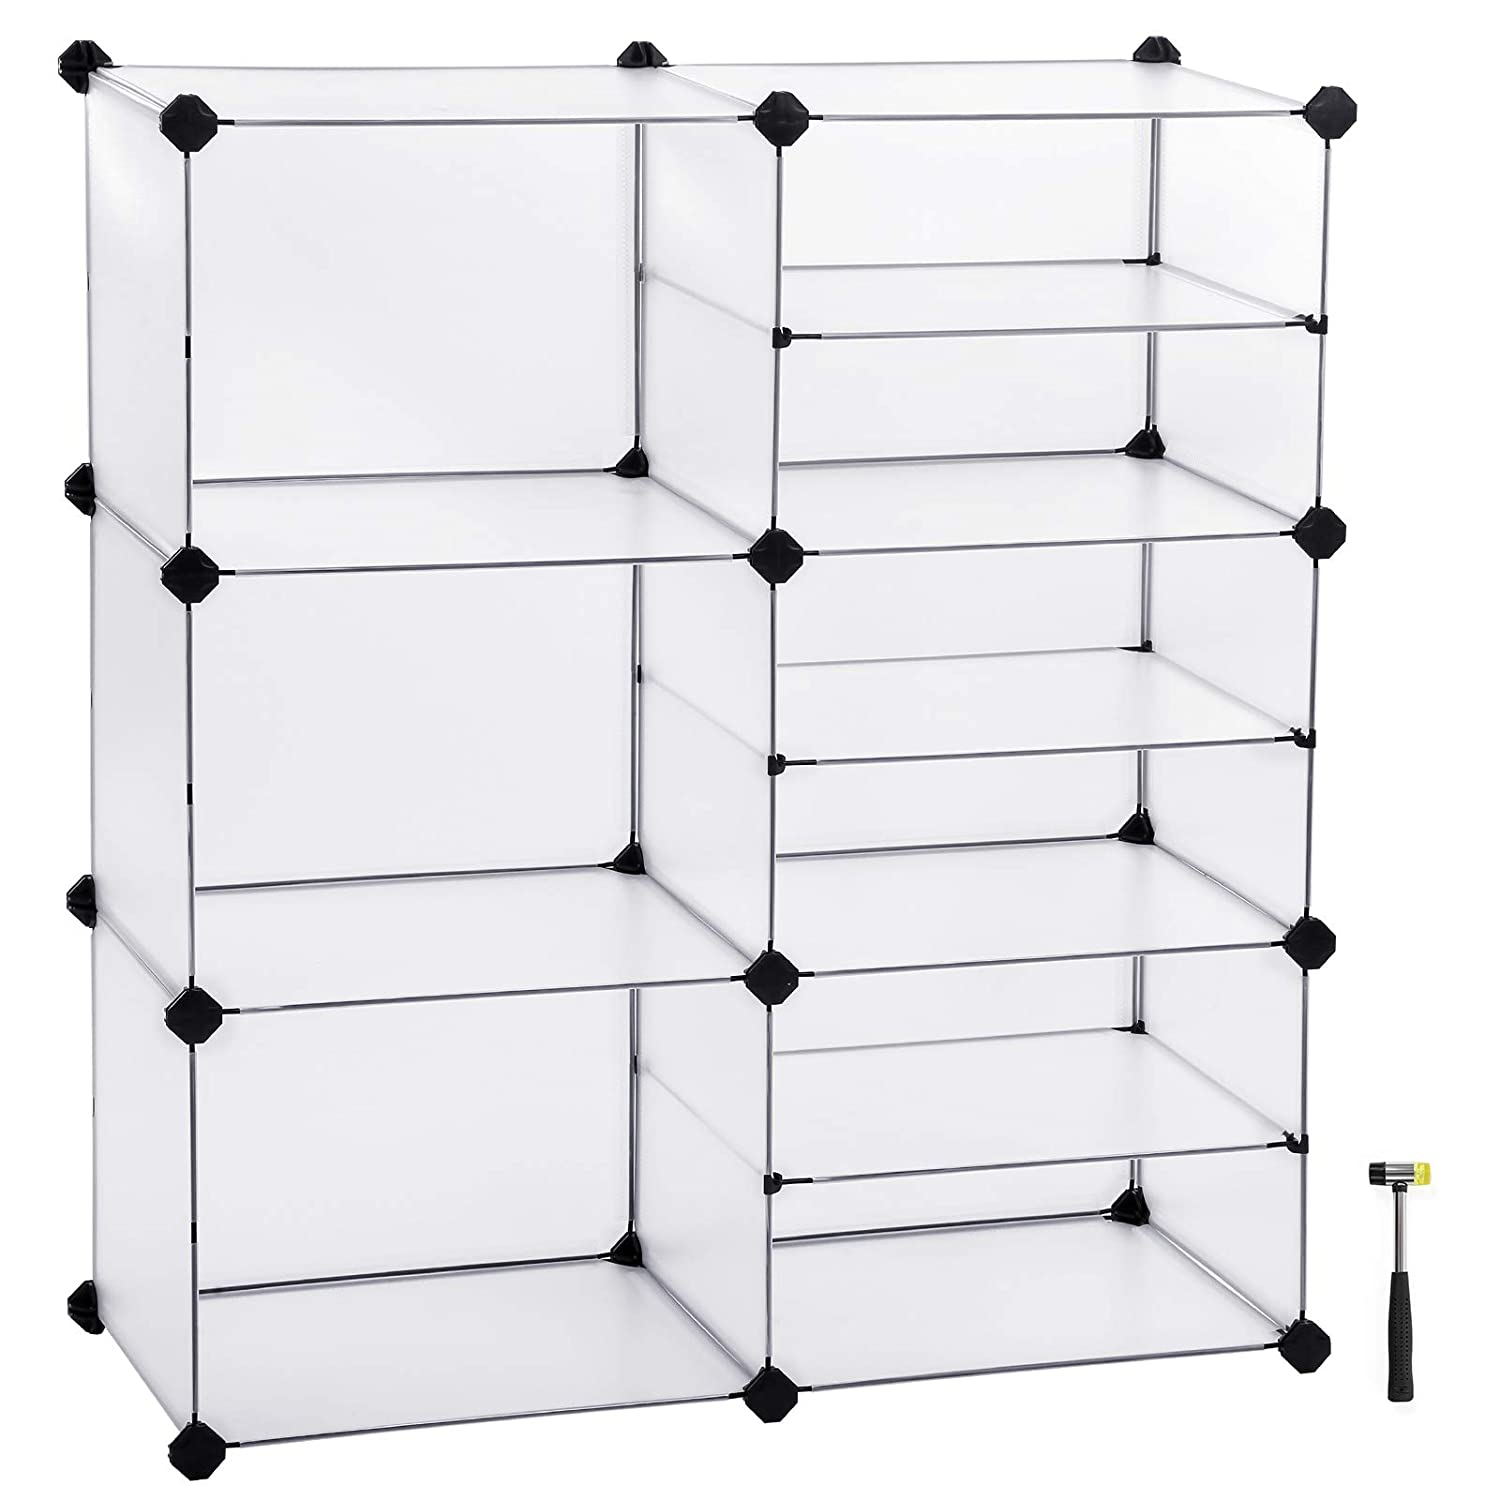 SONGMICS Cube Storage, Interlocking Plastic Cubes Organizer with Divider Design, Modular Closet Cabinet, Bookcase for Closet Bedroom Kid's Room, Includes Rubber Mallet, White, ULPC36W